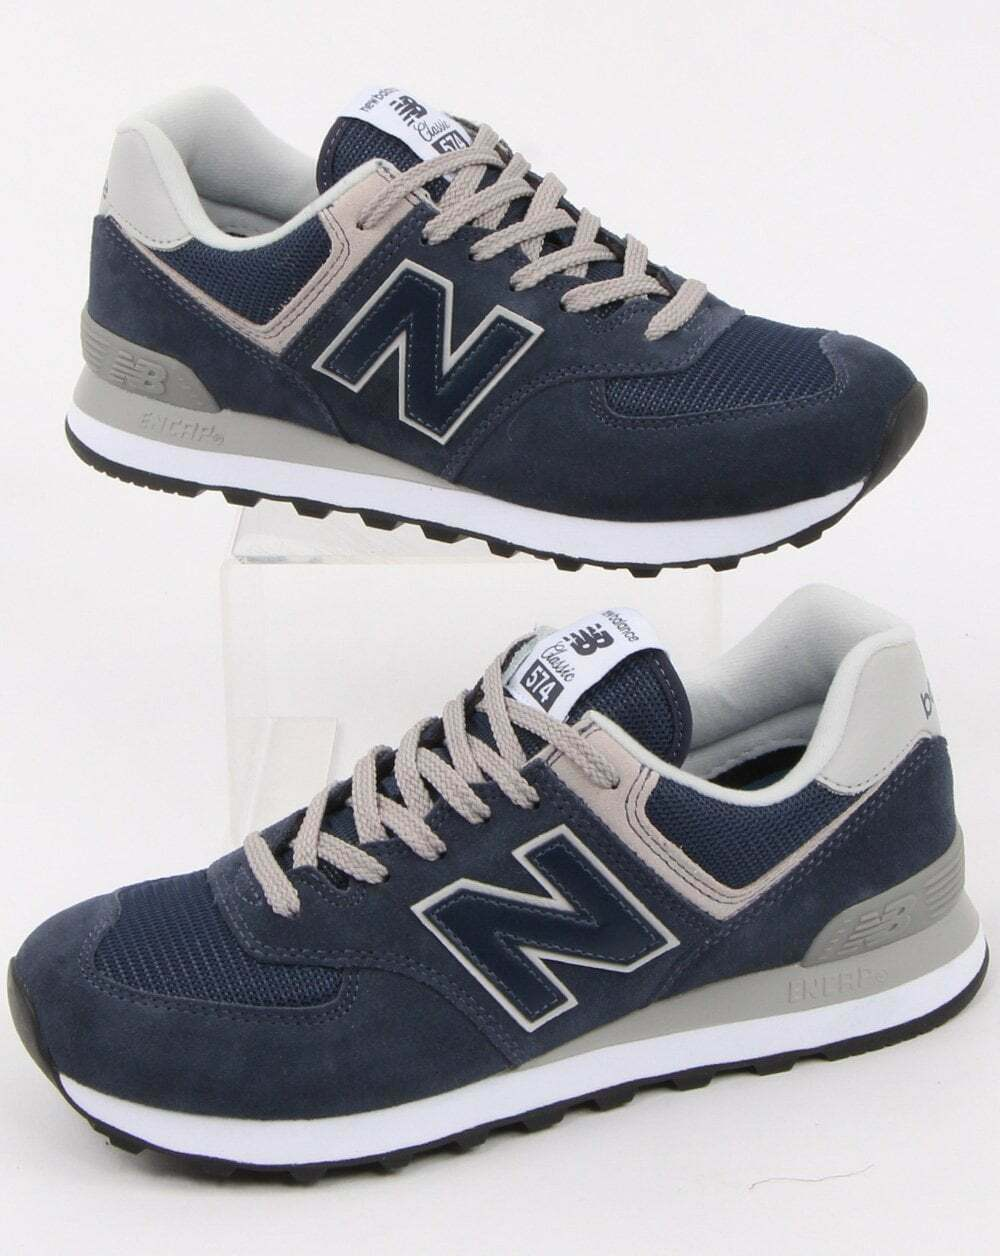 New Balance 574 Heritage Running Shoes Sneakers Navy ML574EGN Size 4.5 US